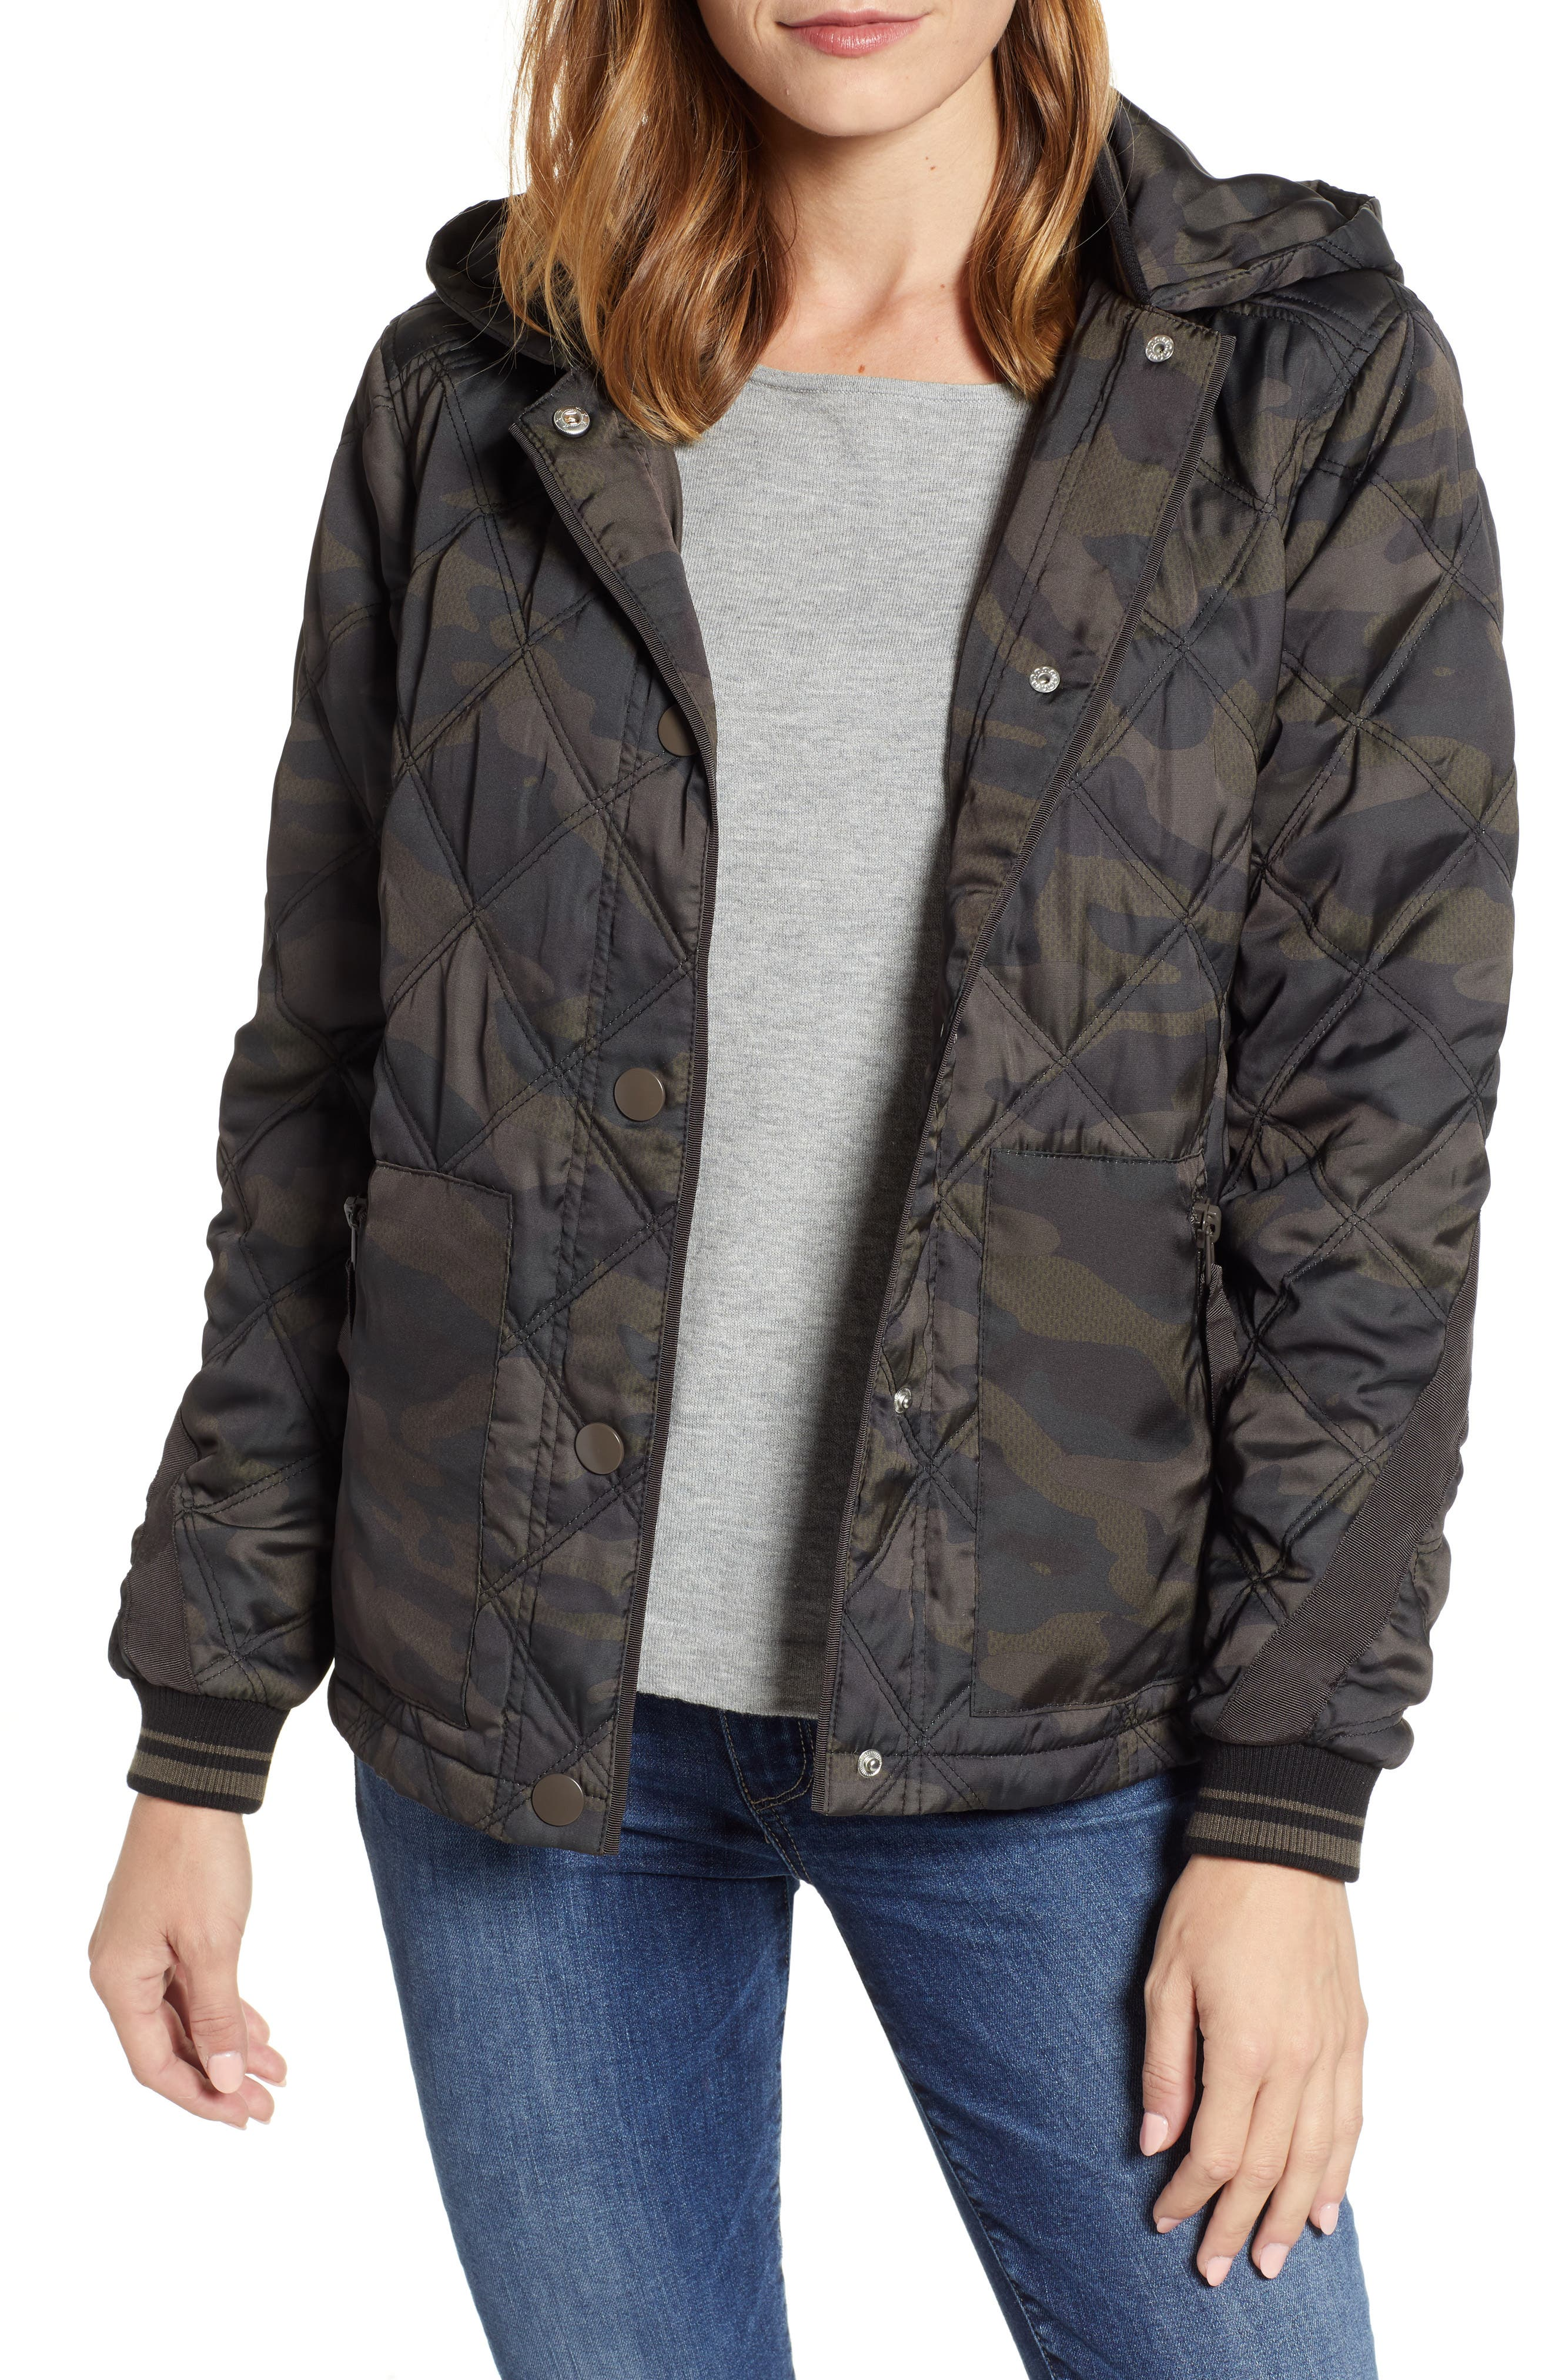 WIT & WISDOM, Lightweight Quilted Jacket, Main thumbnail 1, color, OLIVE